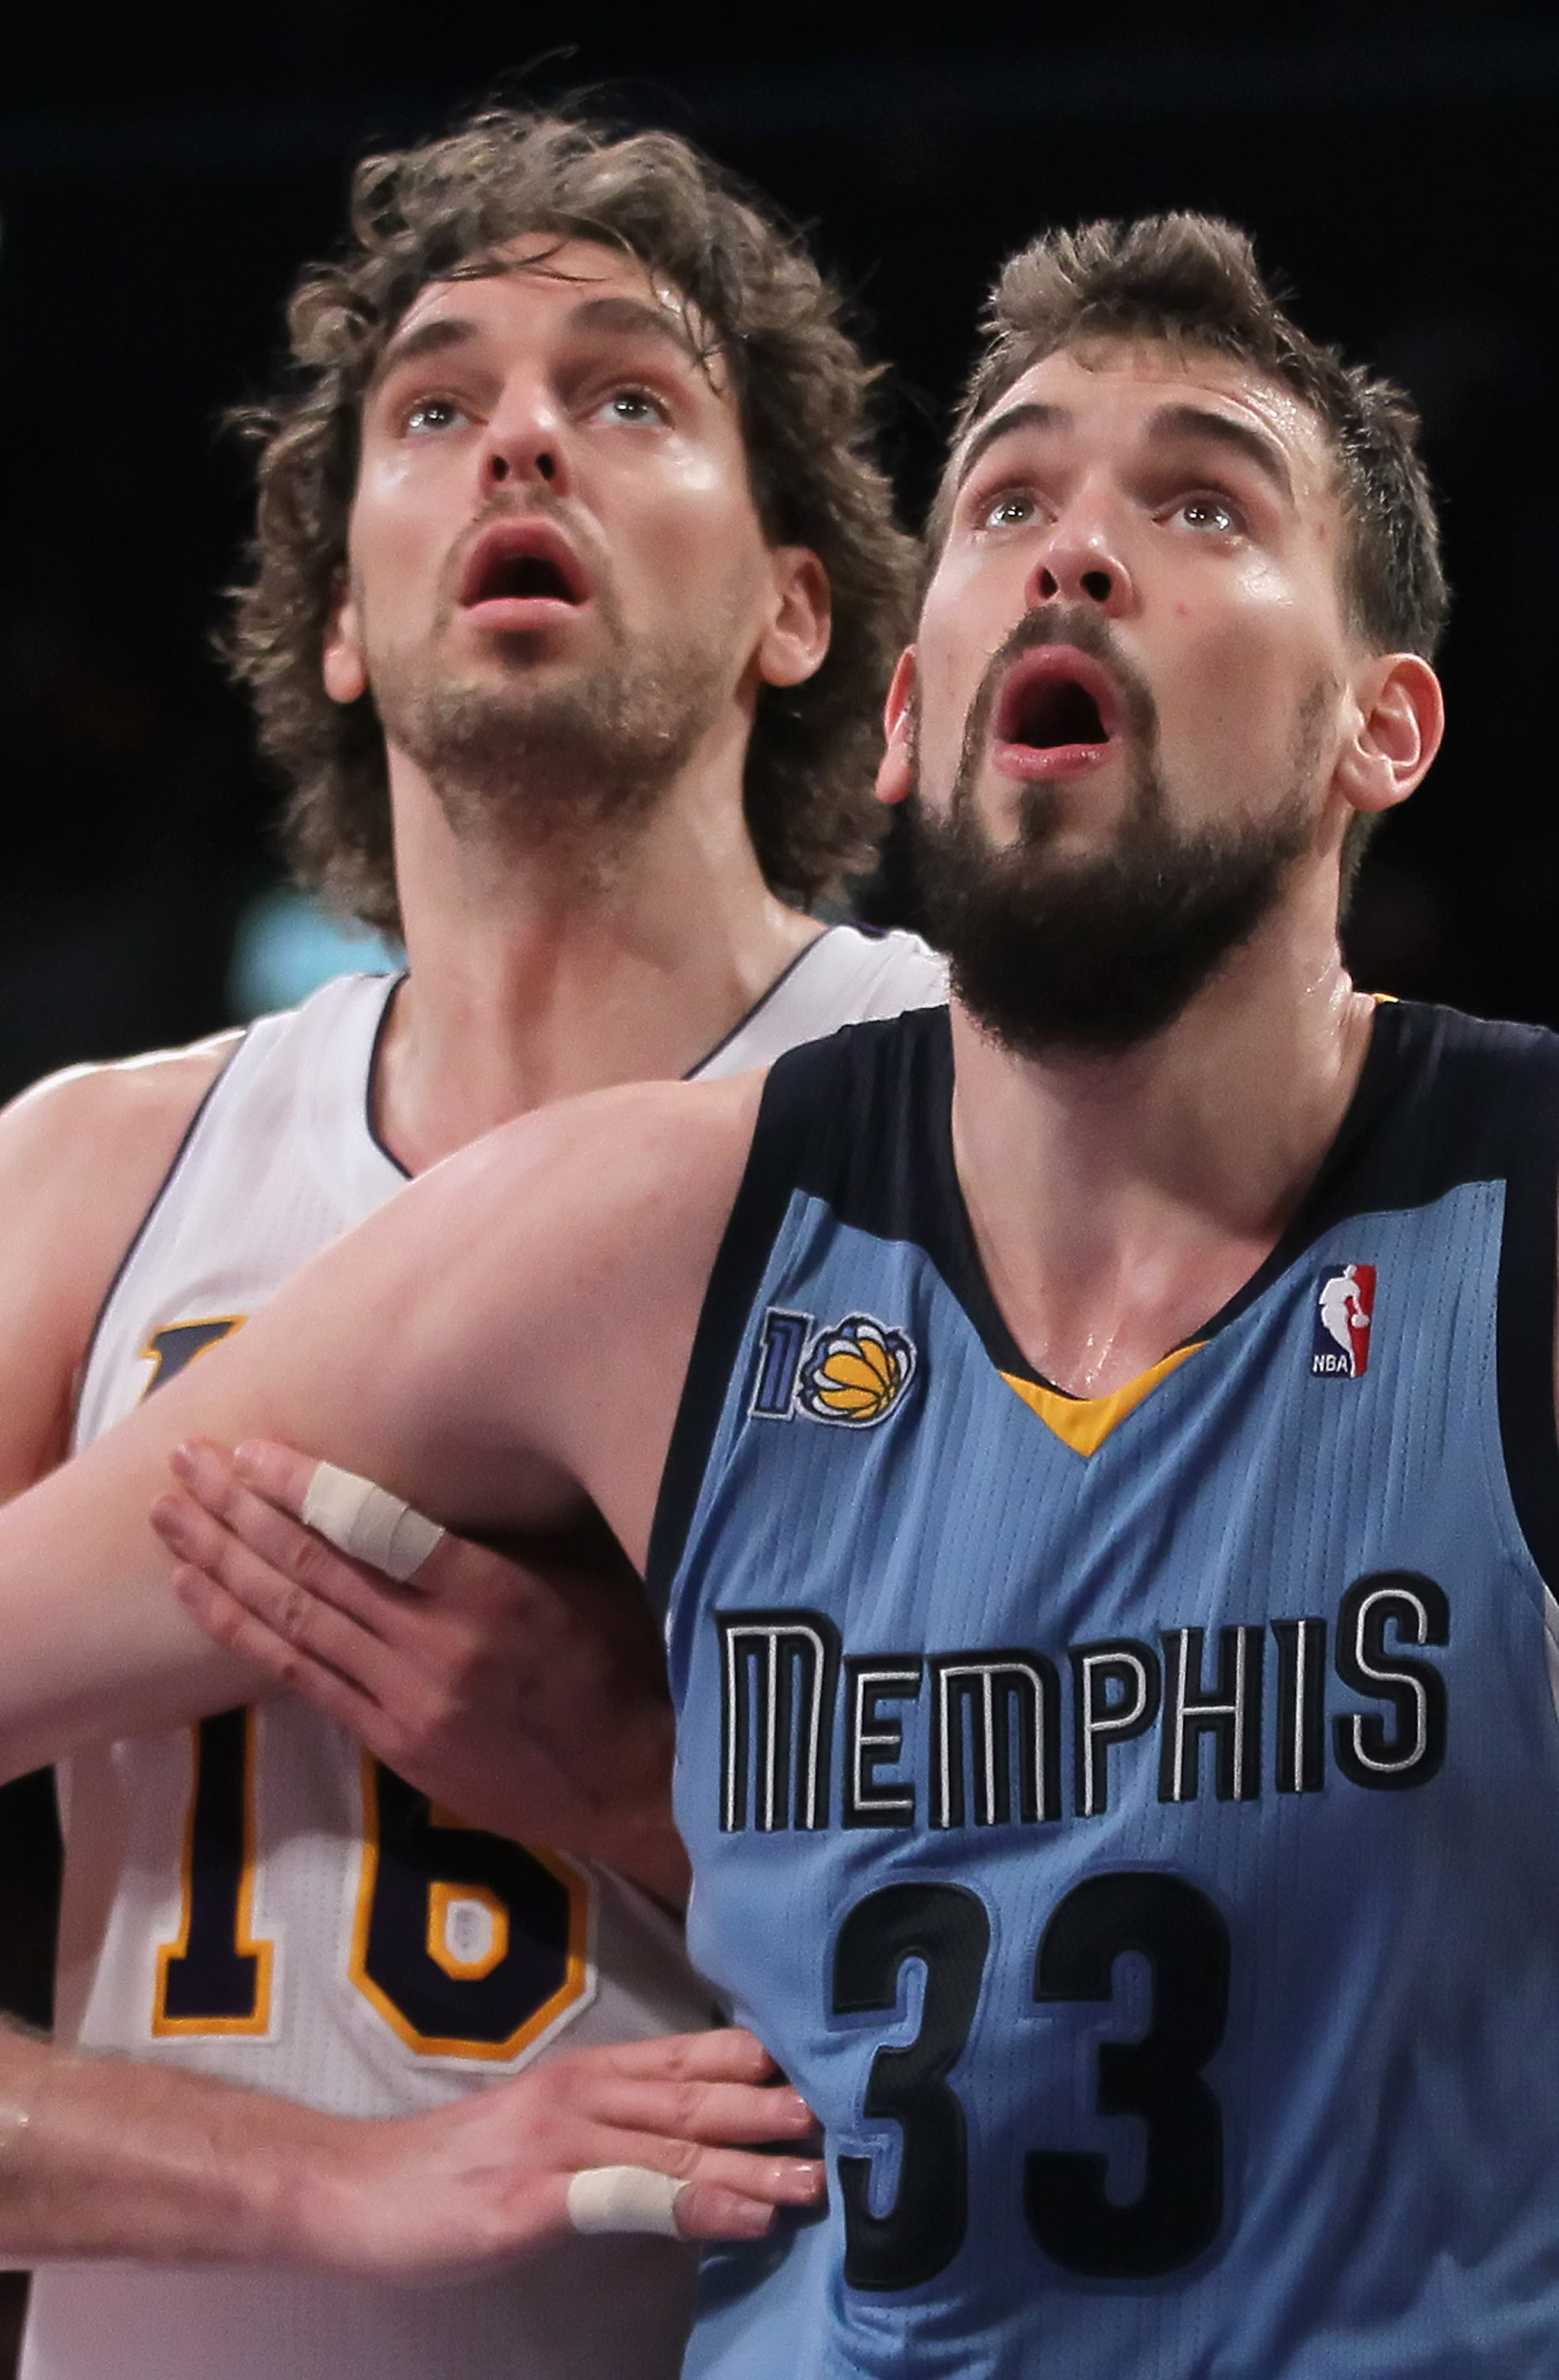 LOS ANGELES, CA - JANUARY 02:  Pau Gasol #16 of the Los Angeles Lakers is boxed out by Marc Gasol #33 of the Memphis Grizzlies during the second half at Staples Center on January 2, 2011 in Los Angeles, California. The Grizzlies defeated the Lakers 104-85